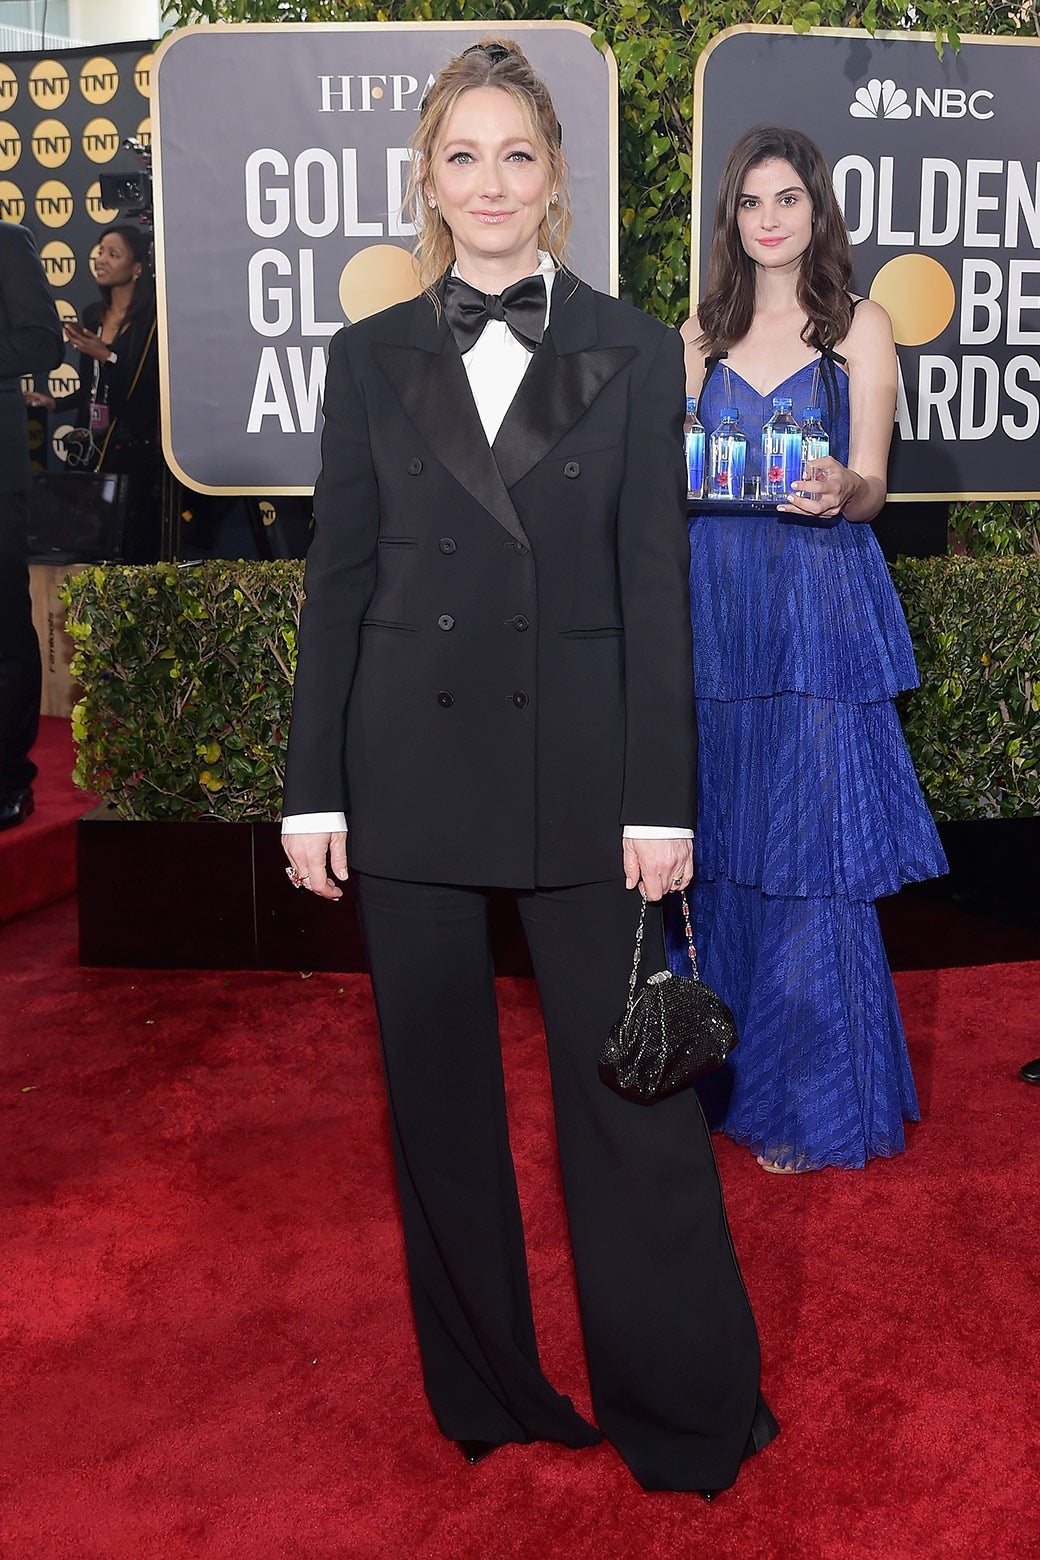 Judy Greer photobombed by Fiji Water Girl at the Golden Globes